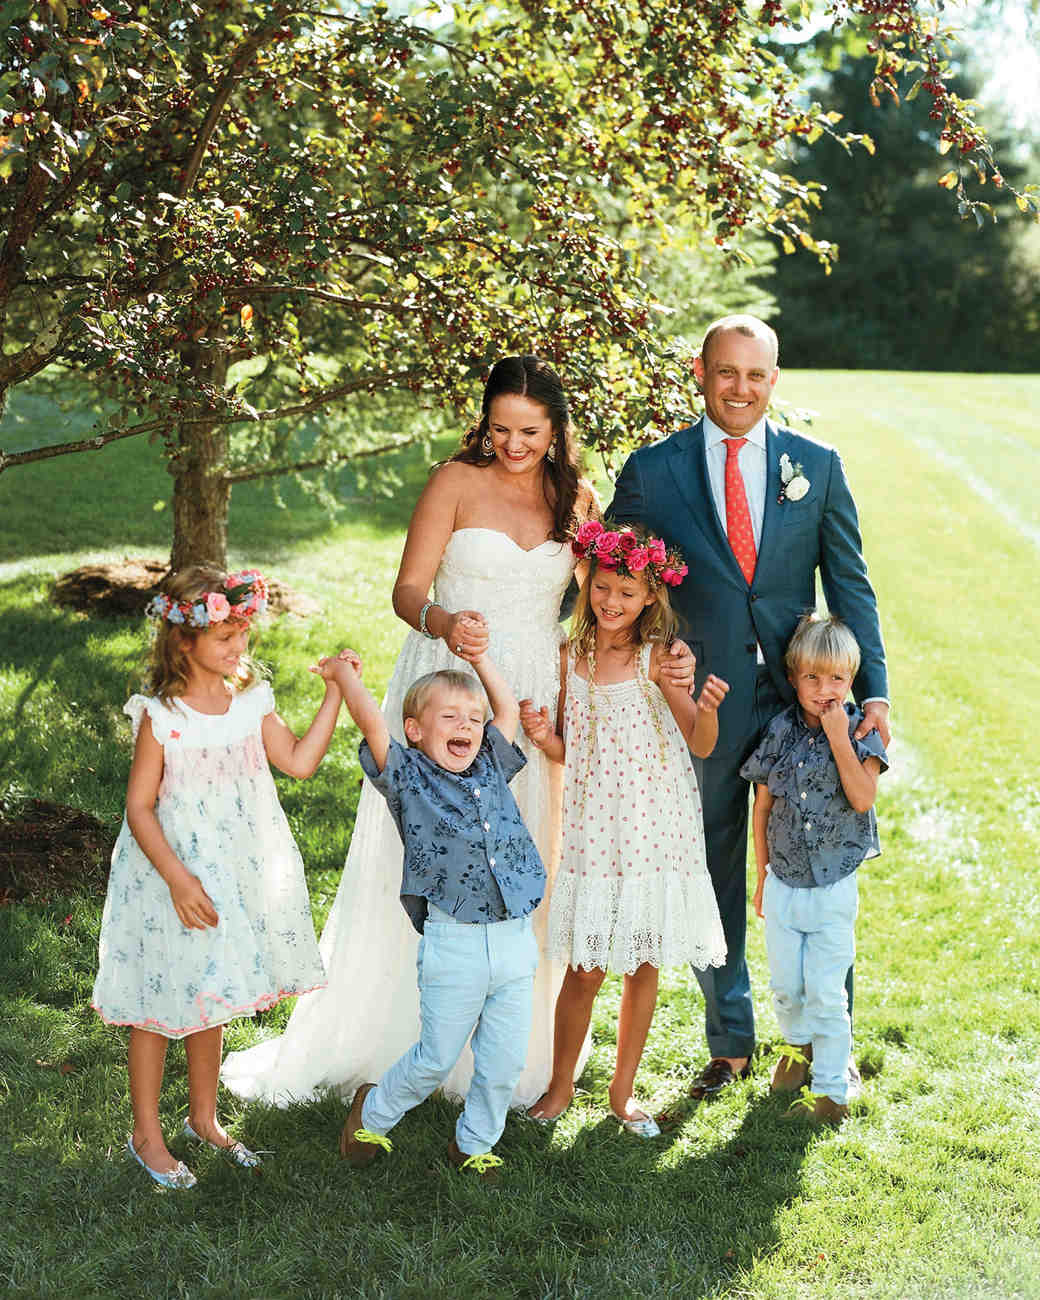 mfiona-peter-wedding-vermont-family-guests-9660.12r.2015.47-d112512.jpg